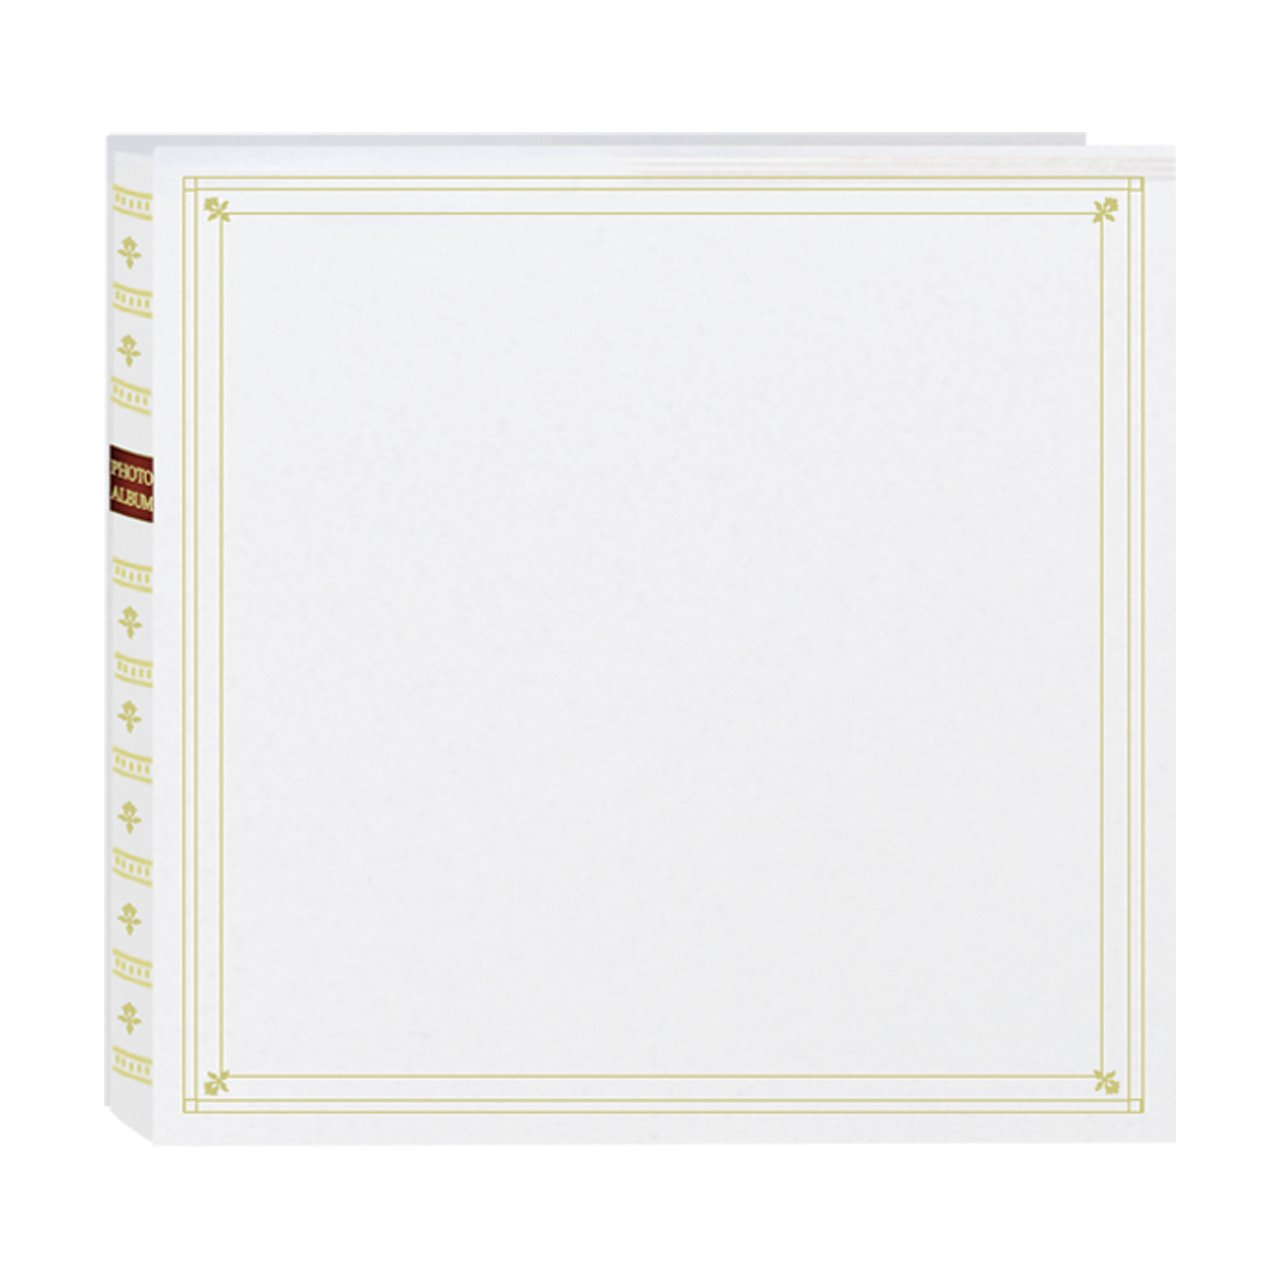 Pioneer Photo Albums 300-Pocket Post Bound Leatherette Cover Photo Album, 3.5 x 5.25 Inch Prints, Bay Blue MP-300/BB